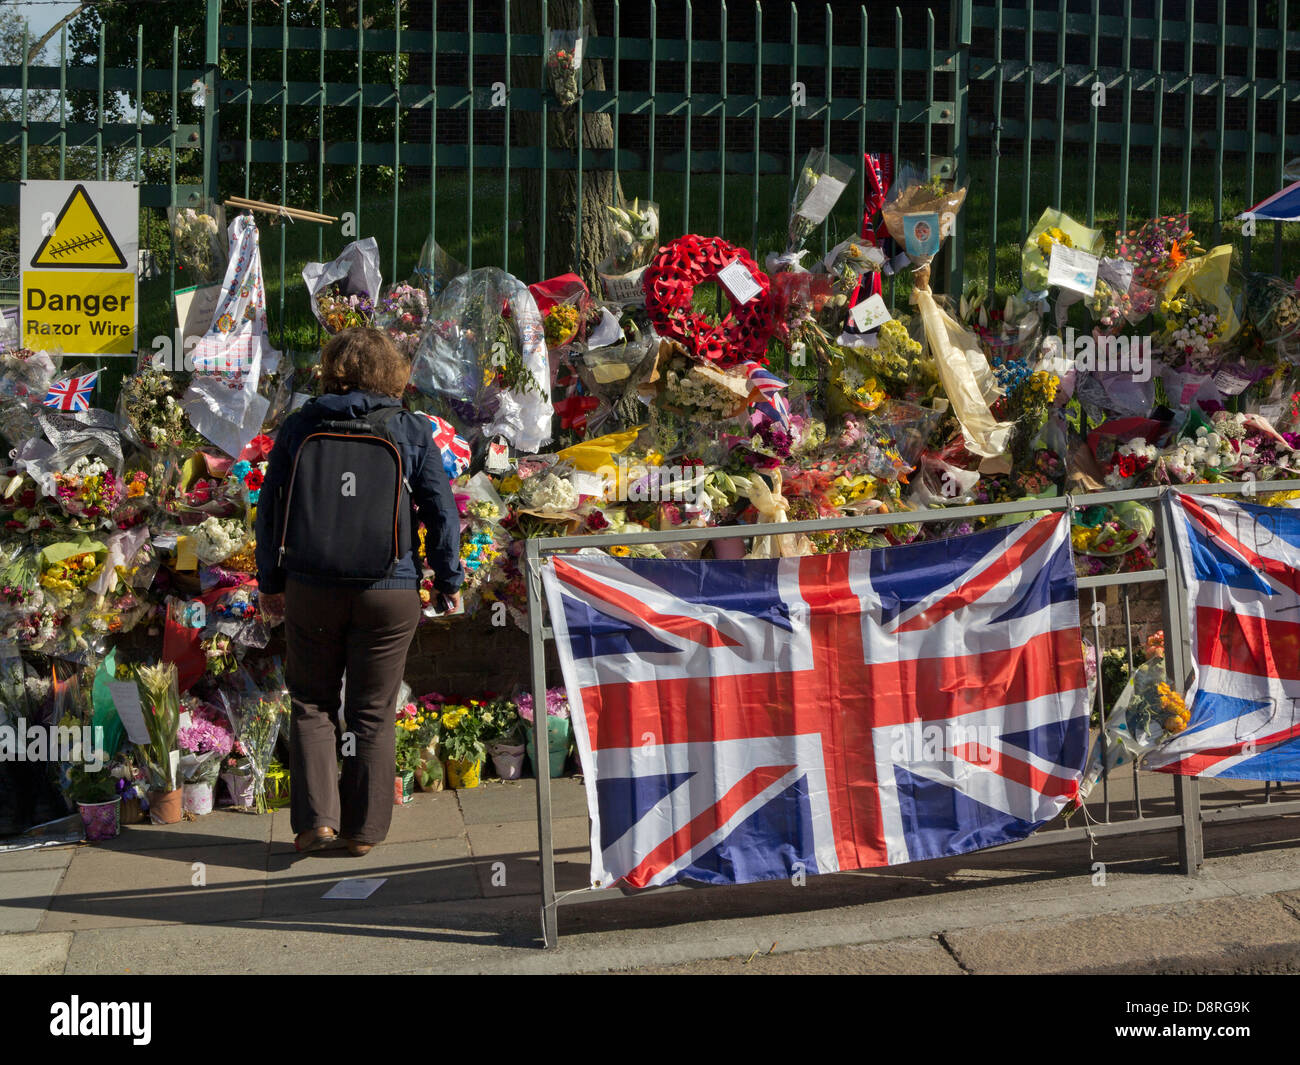 Woman watches floral tributes to Drummer Lee Rigby, killed outside Woolwich Barracks in London on May 22  - Stock Image